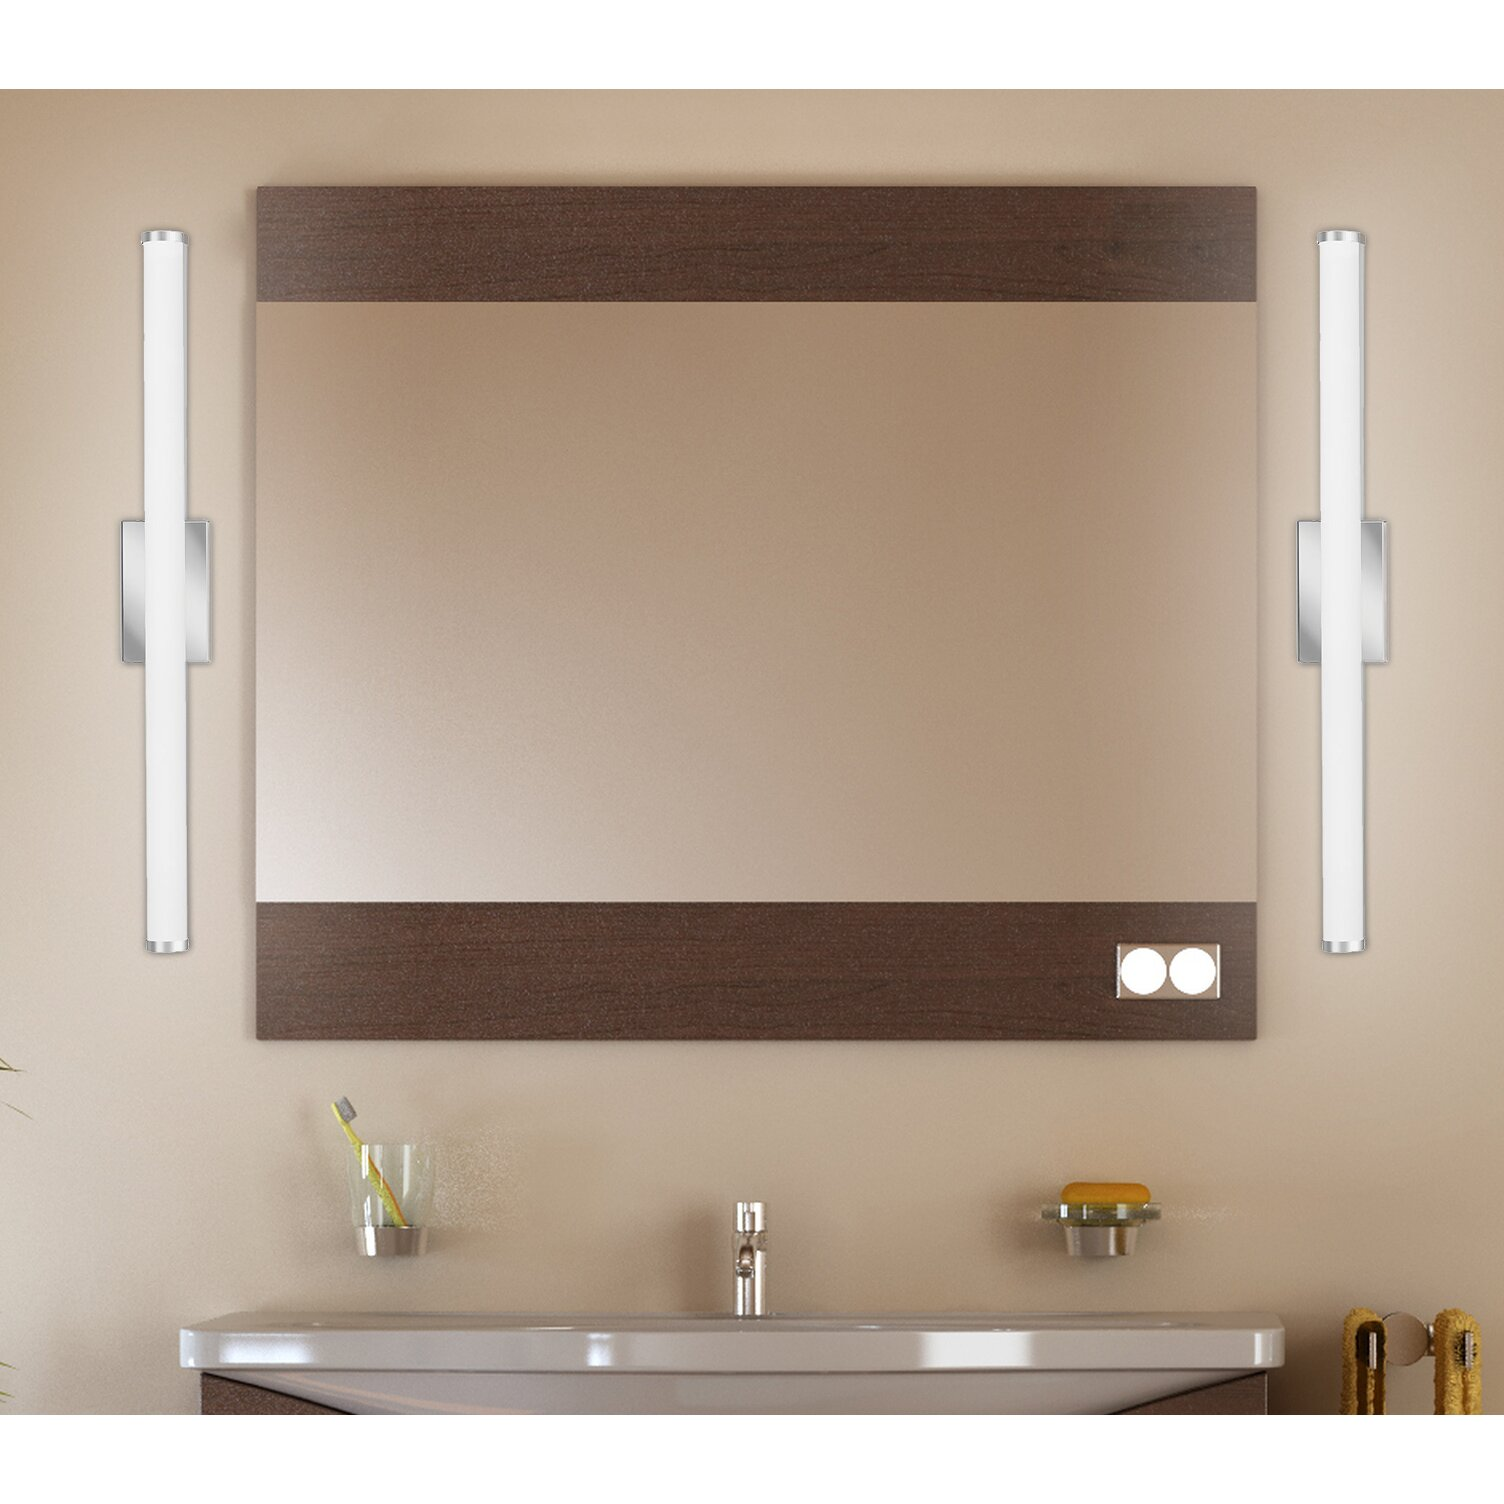 Lithonia Under Cabinet Lighting Lithonia Lighting Cylinder 1 Light Led Bath Bar Reviews Wayfair